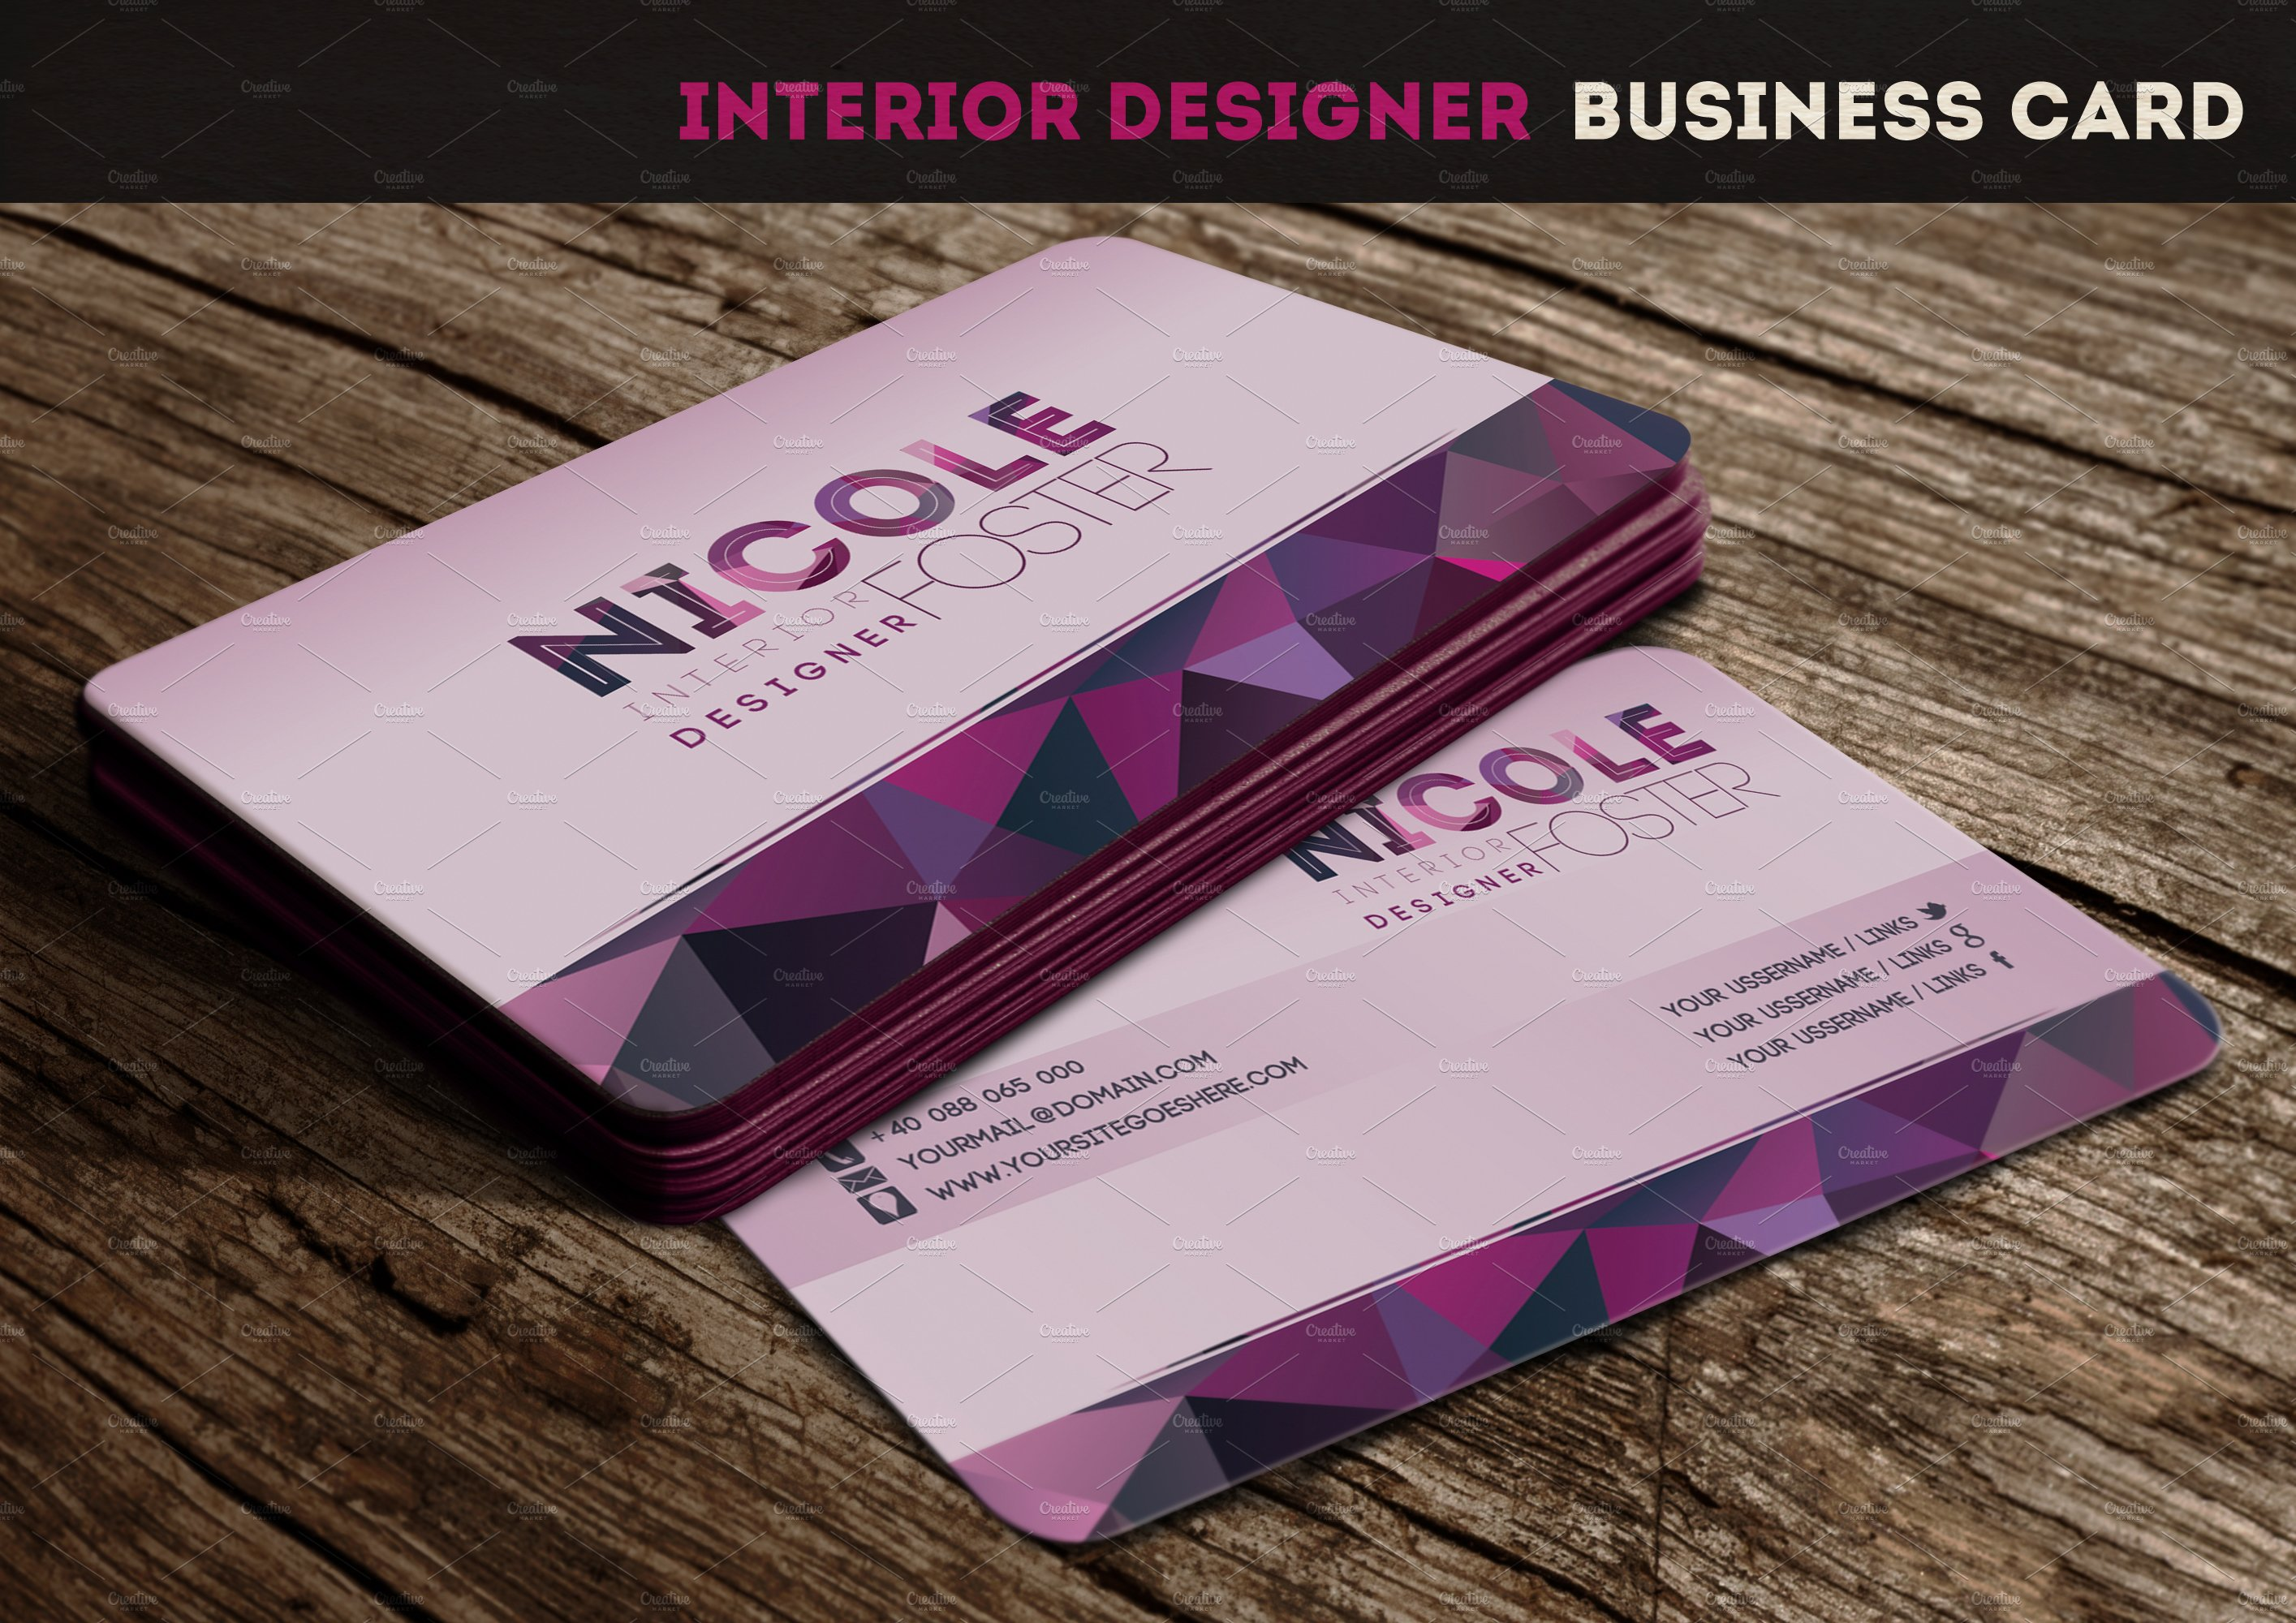 Interior Designer Business Card ~ Business Card Templates ...